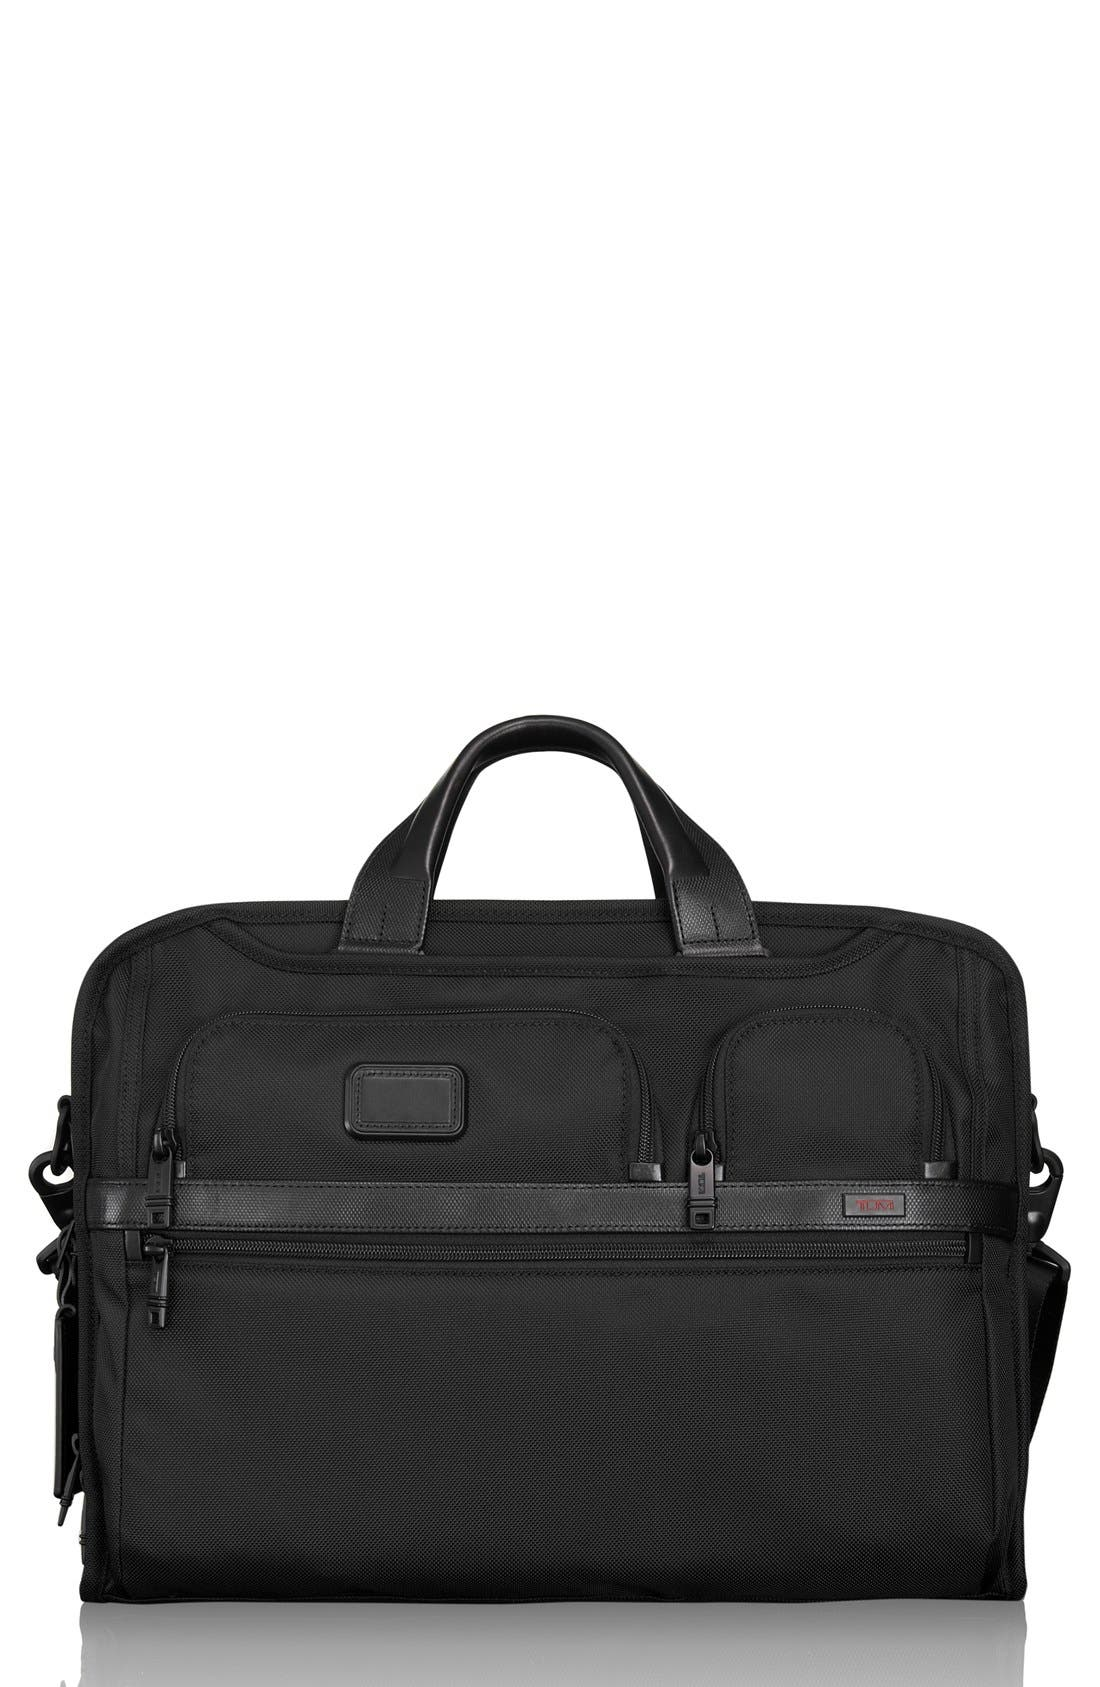 Main Image - Tumi 'Alpha 2' Laptop Briefcase with Tumi ID Lock Pocket